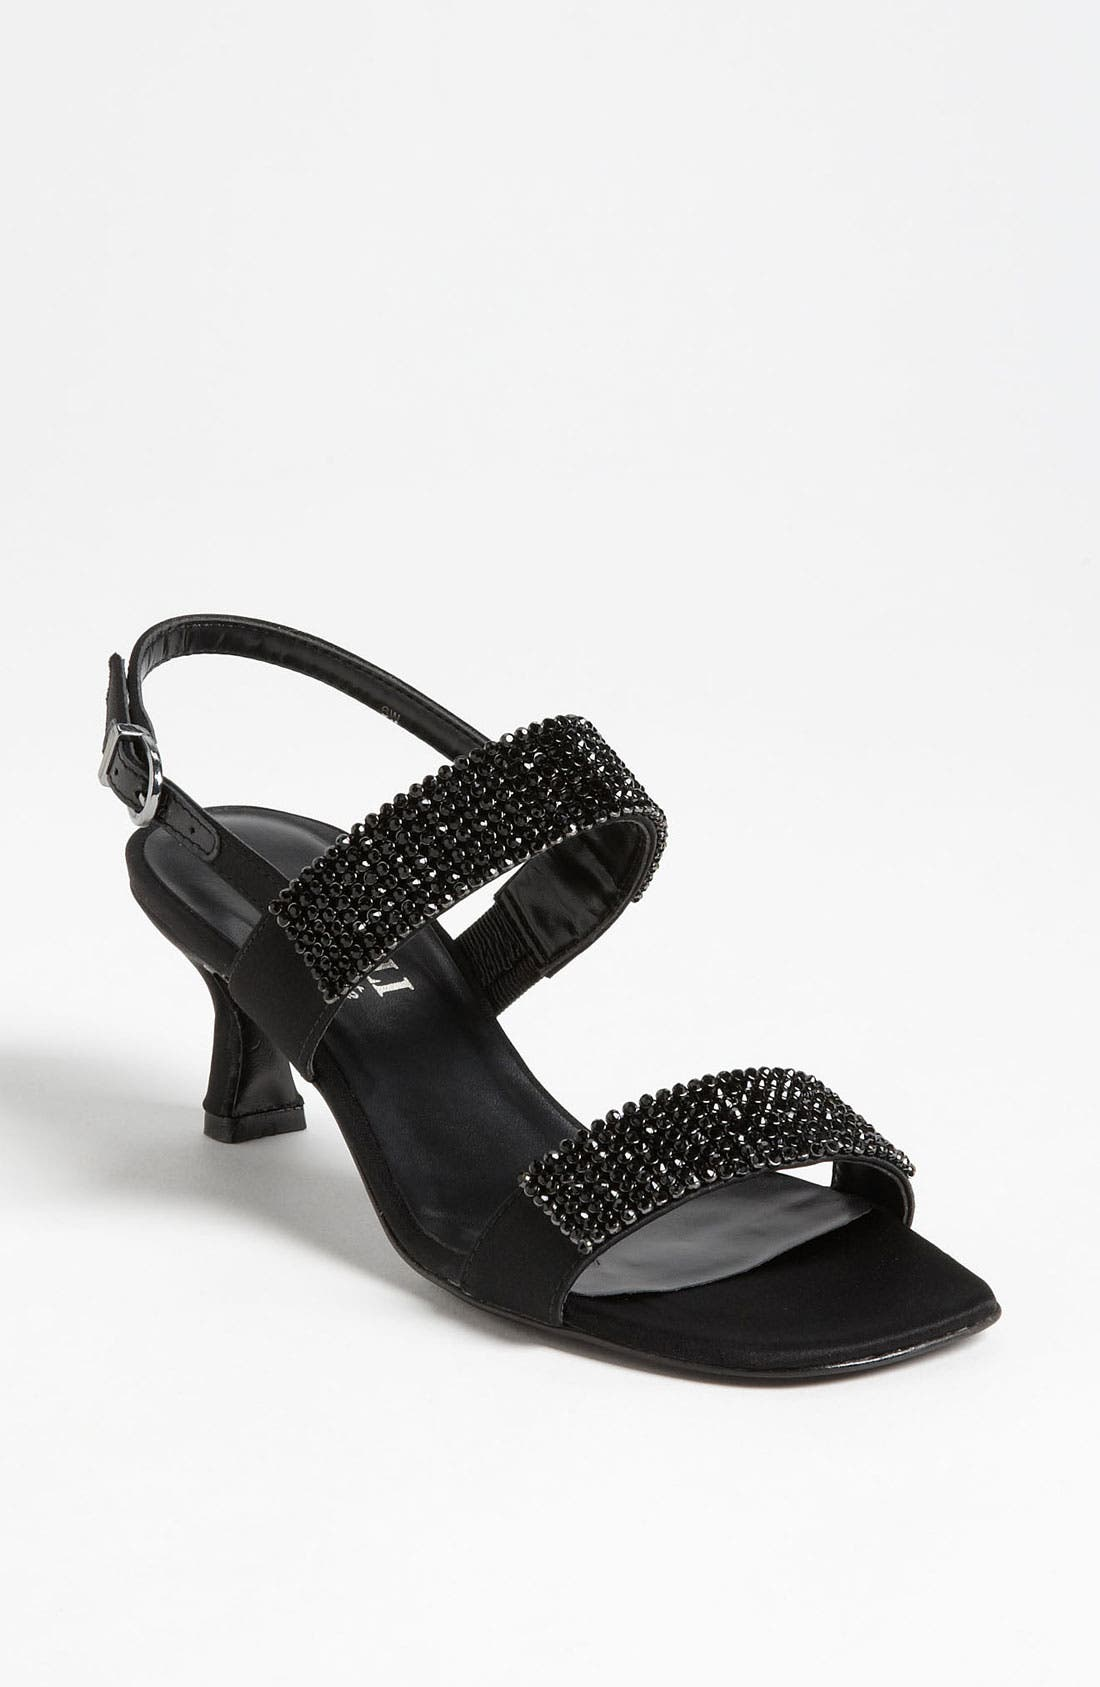 Alternate Image 1 Selected - VANELi 'Marieta' Sandal